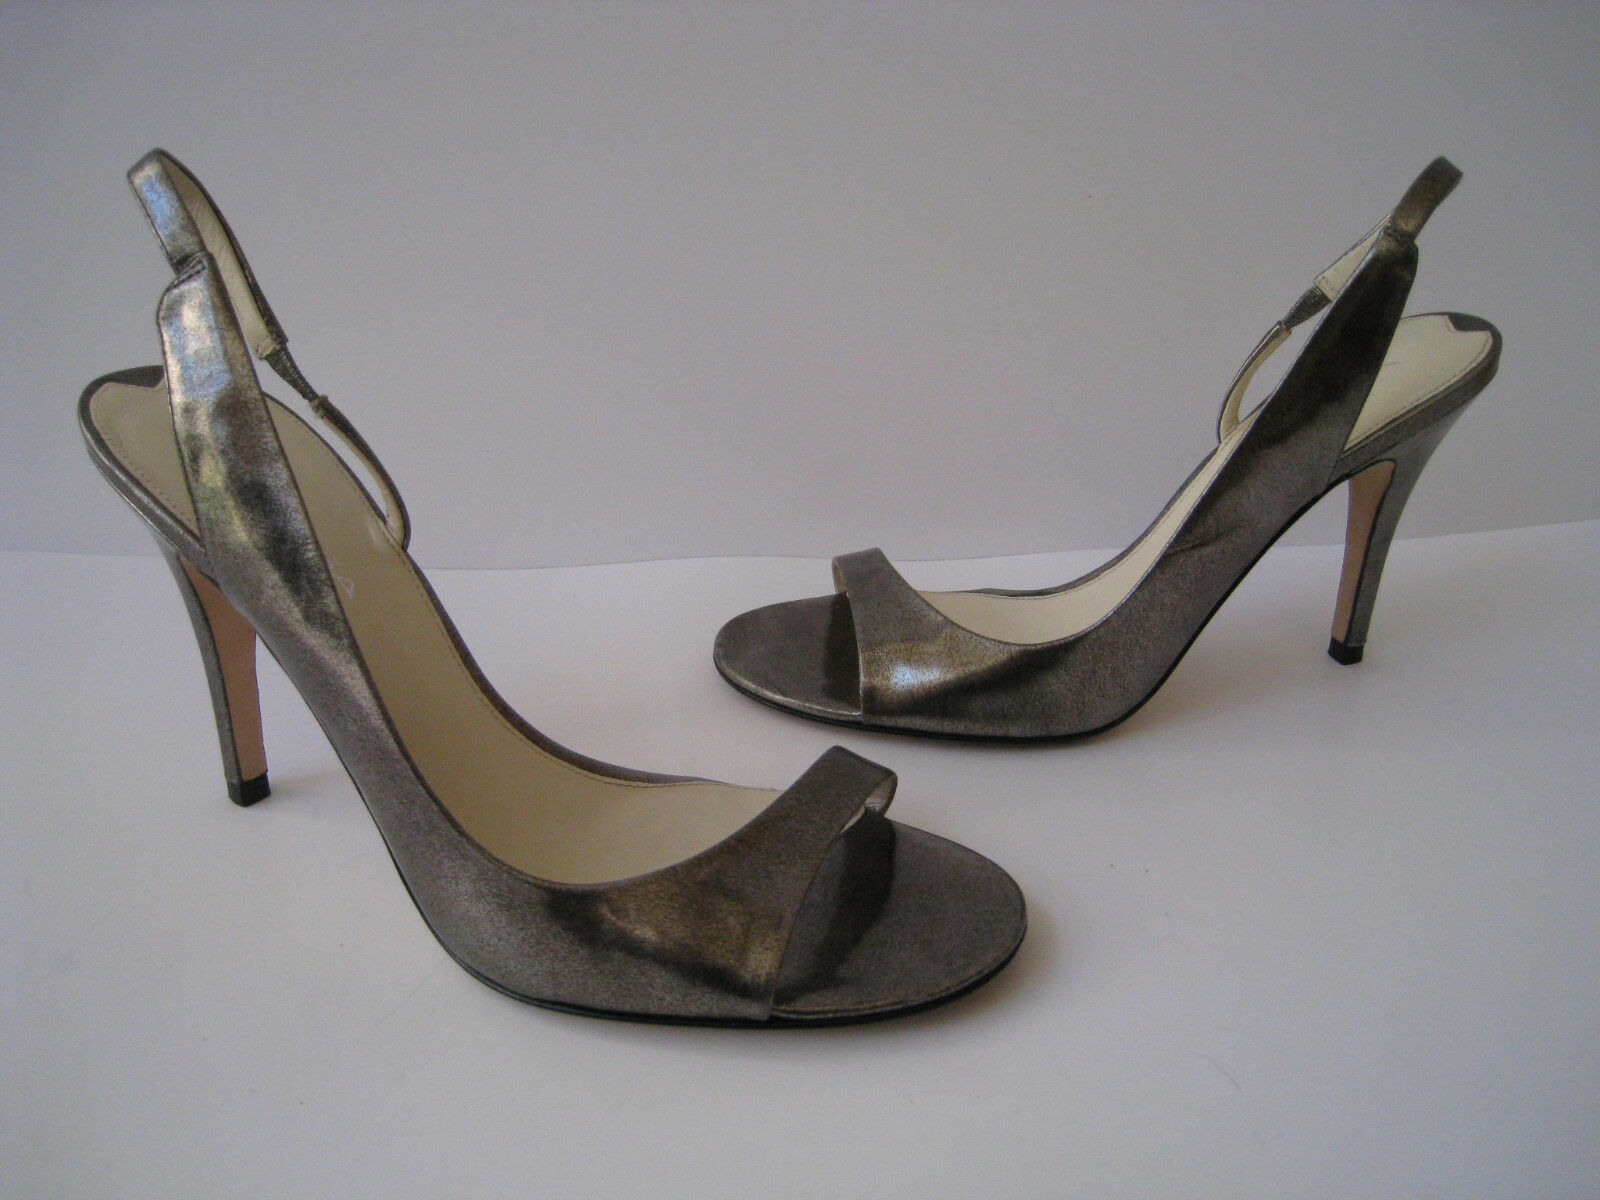 VIA SPIGA METALLIC PEWTER SANDAL STILETTO 4 HEELS femmes Taille US 8.5 SUPER HOT